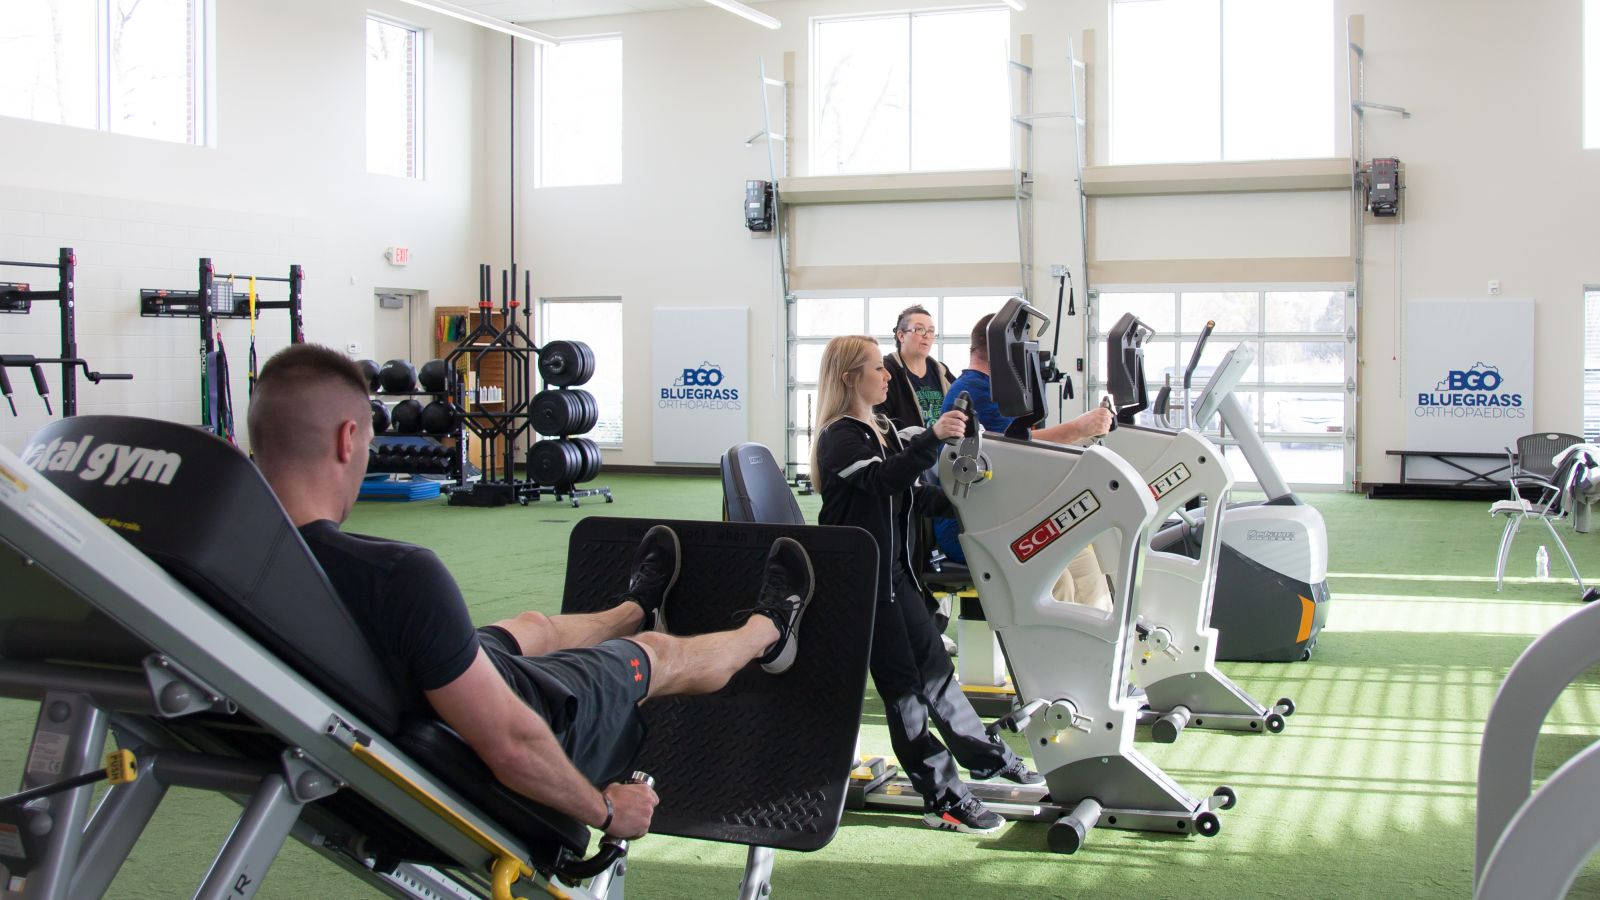 a person sitting on an exercise machine